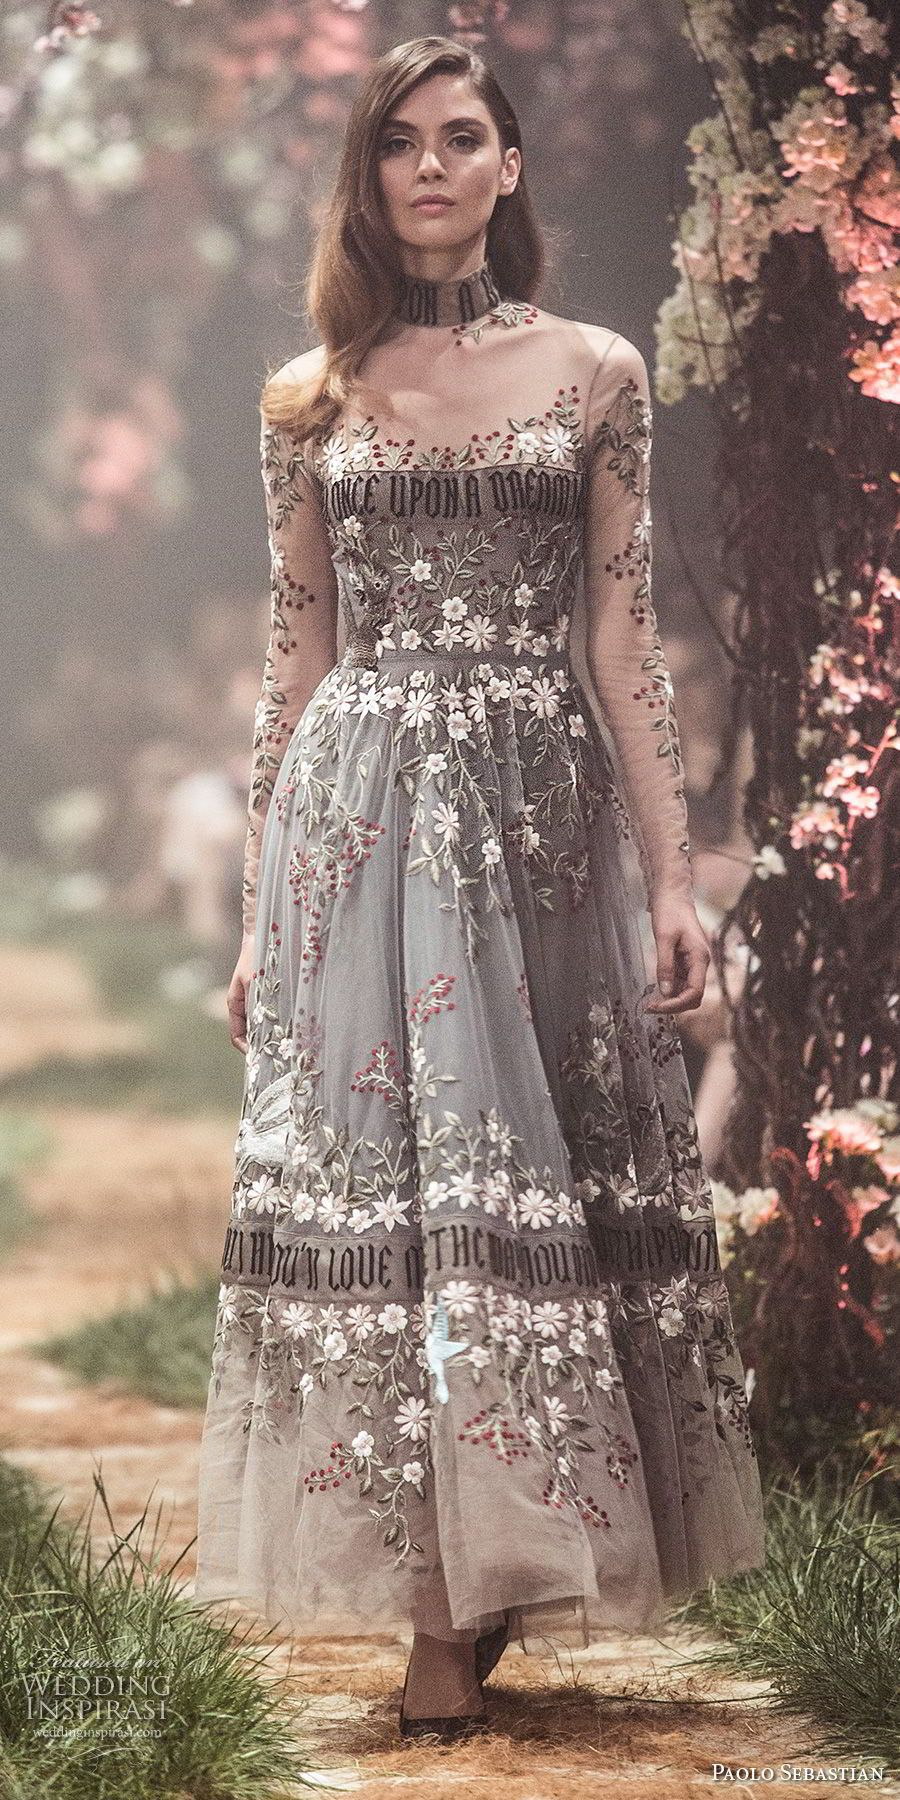 Paolo sebastian spring couture collection u uconce upon a dream